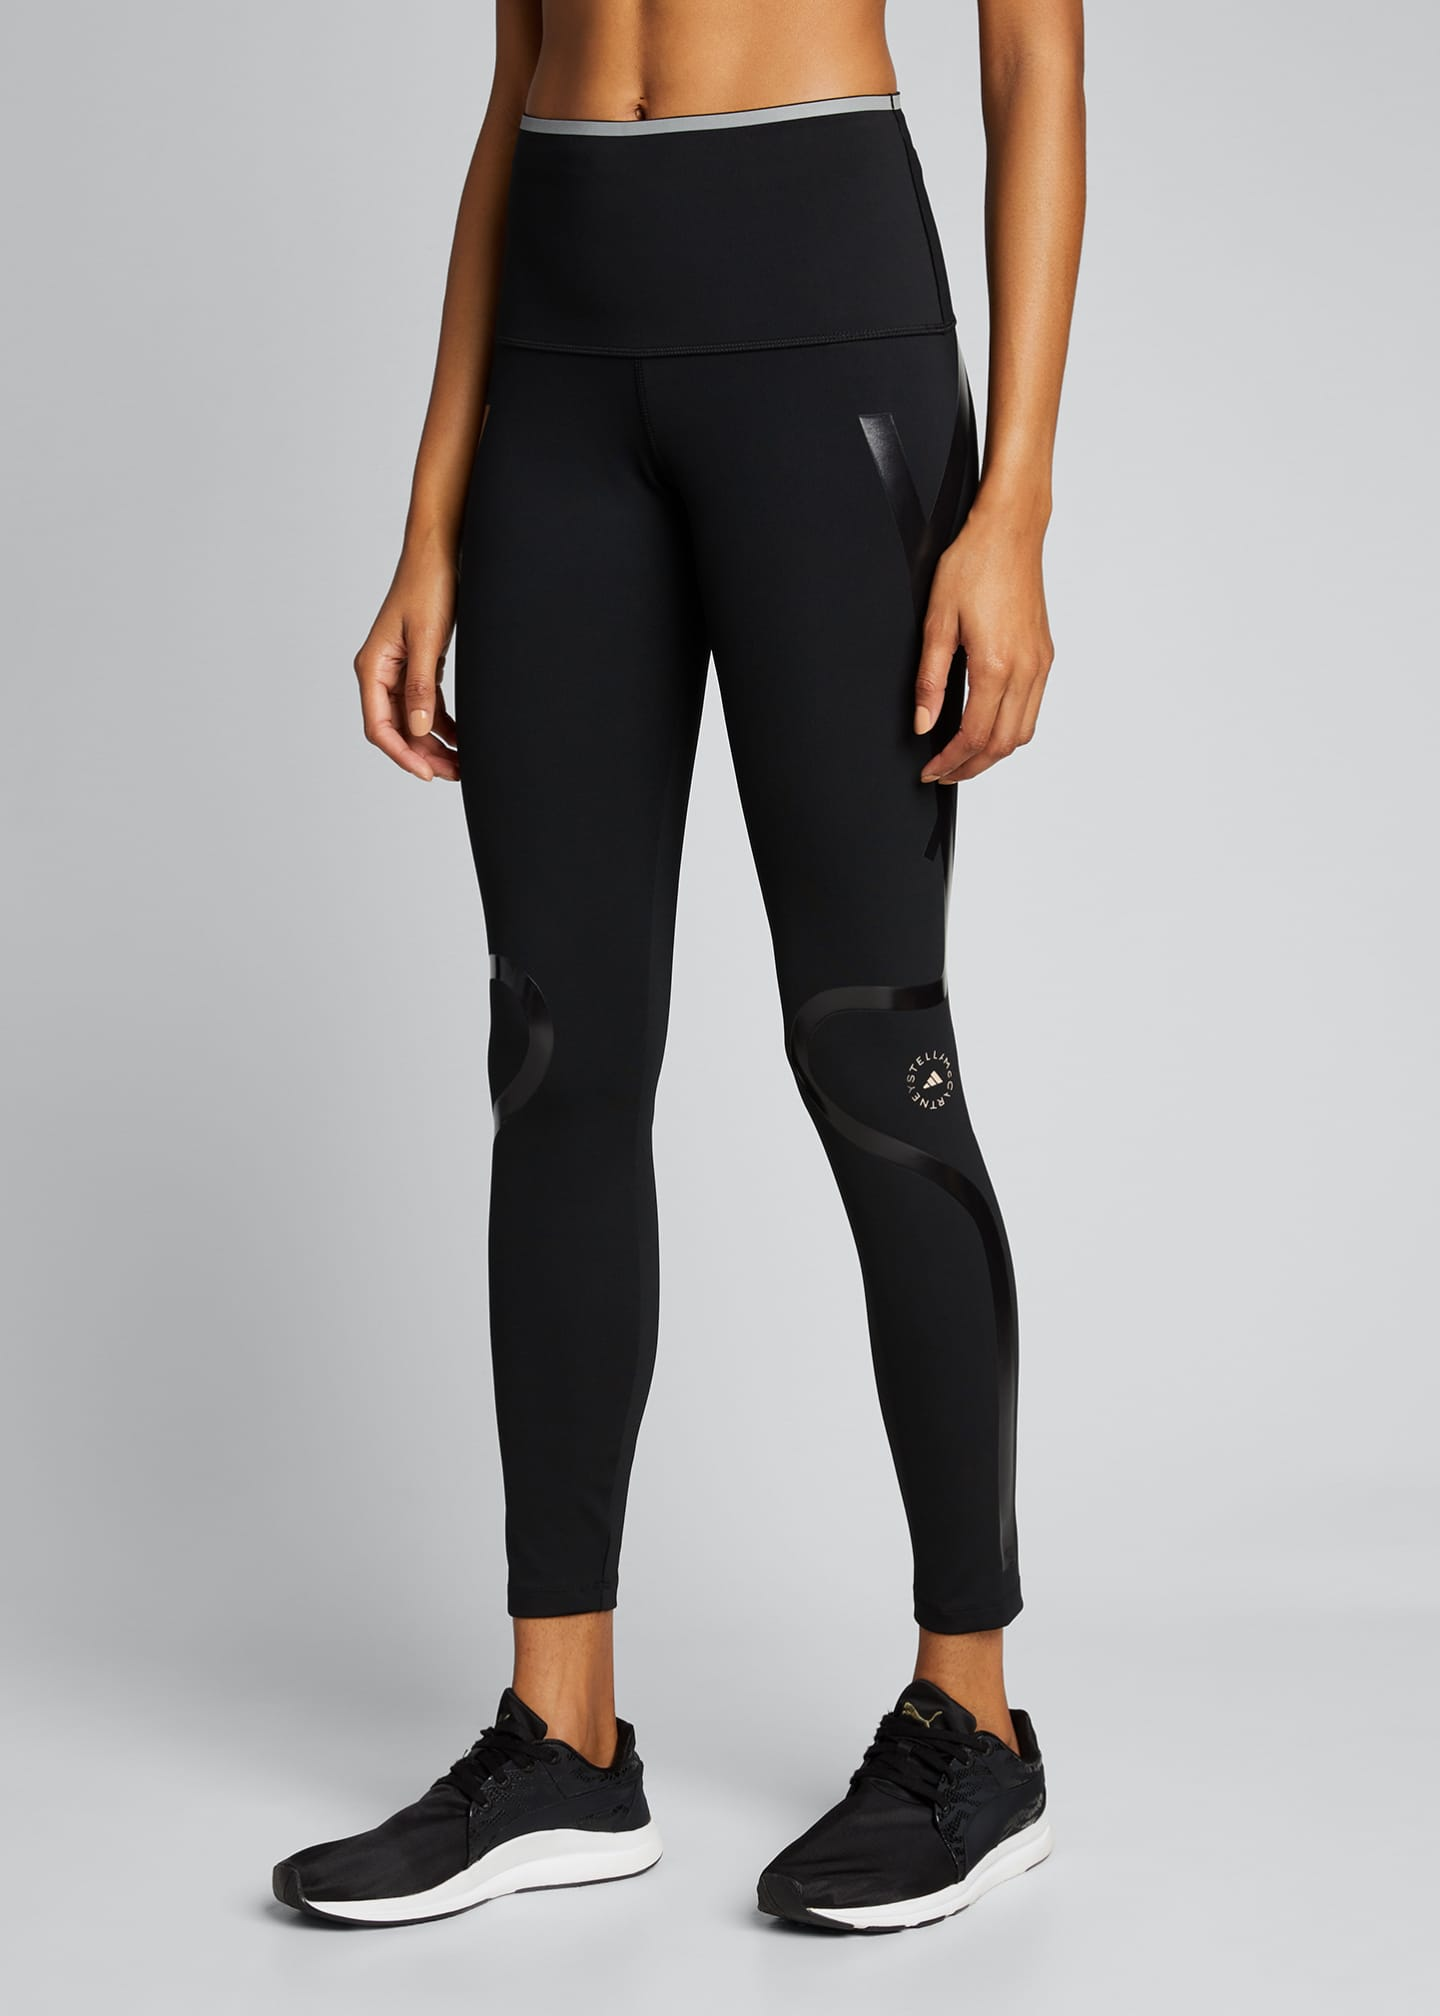 Image 3 of 5: Truepurpose Athletic Tights